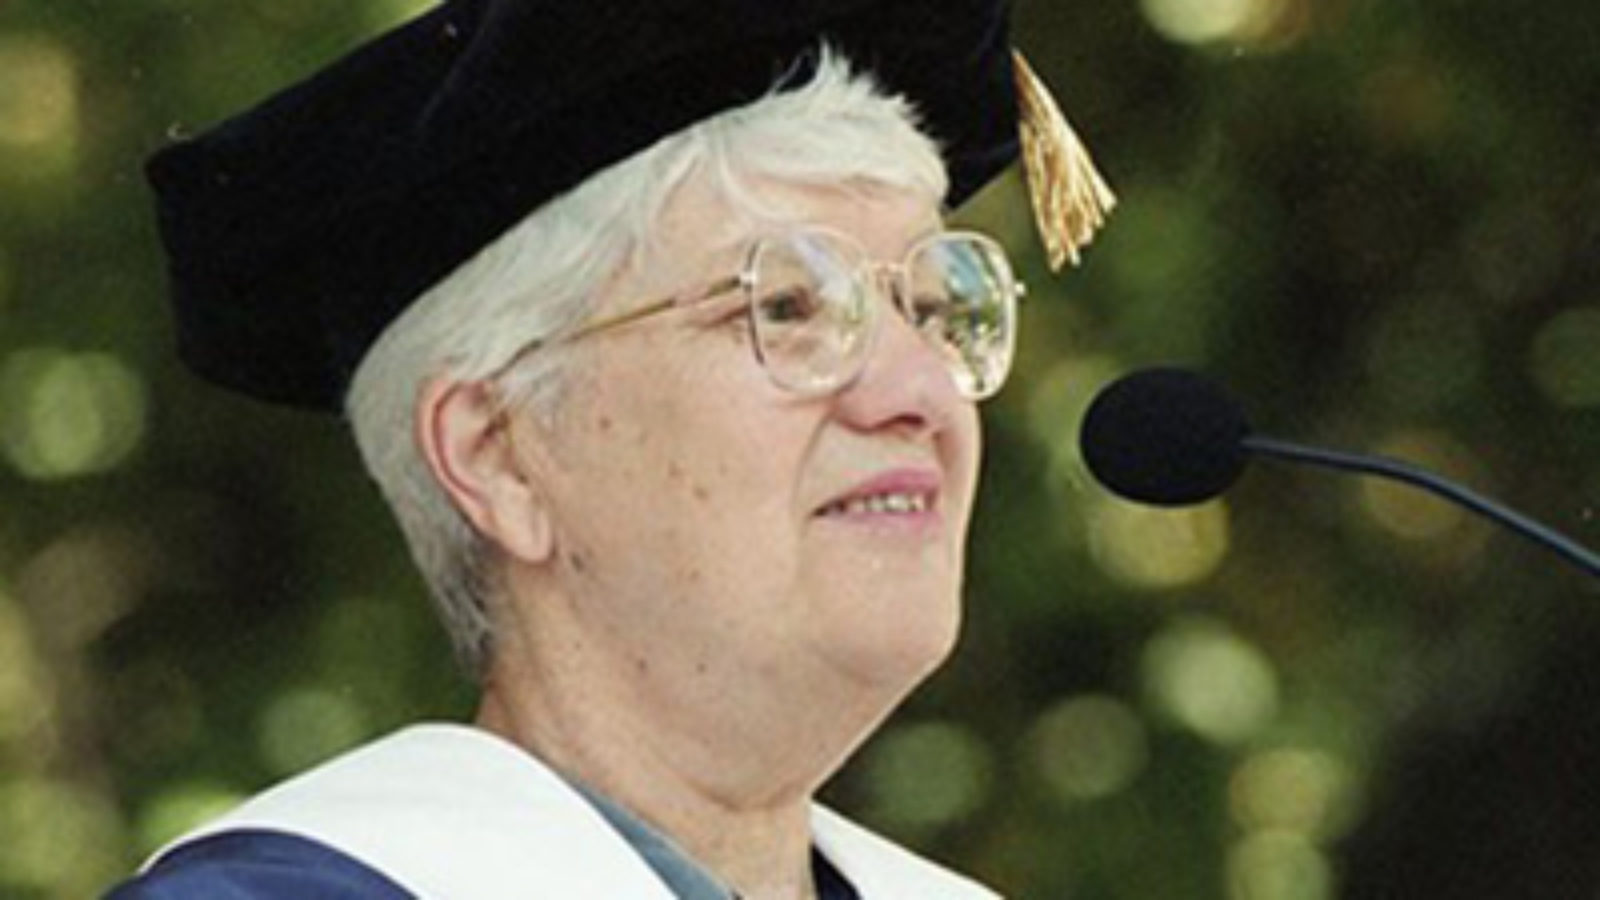 Vera Rubin in cap and gown